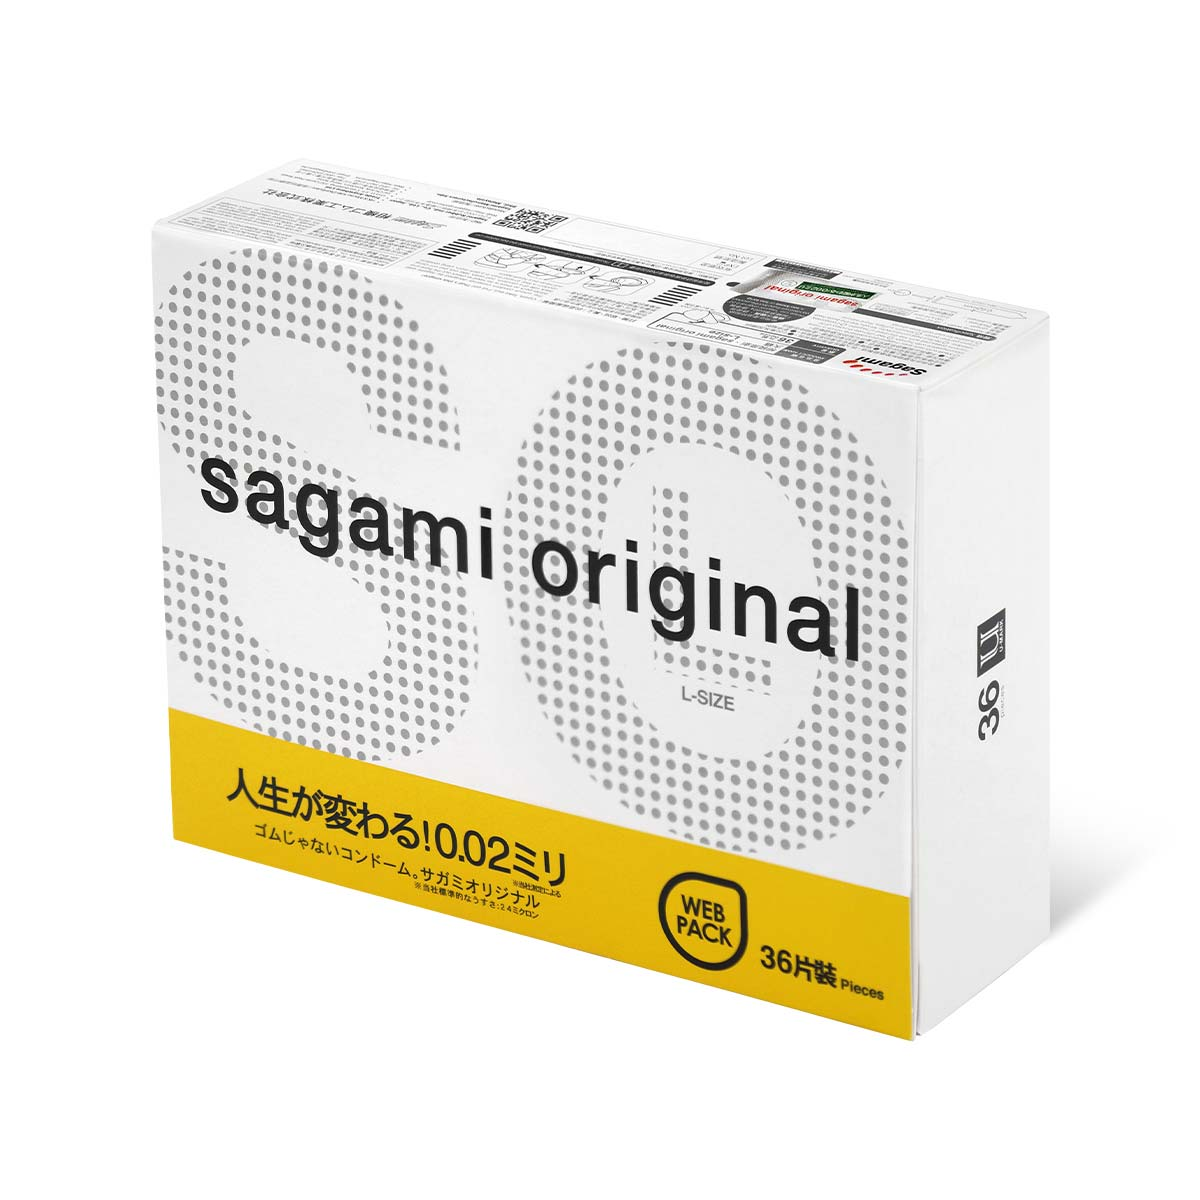 Sagami Original 0.02 L-size (2nd generation) 58mm 36's Pack PU Condom